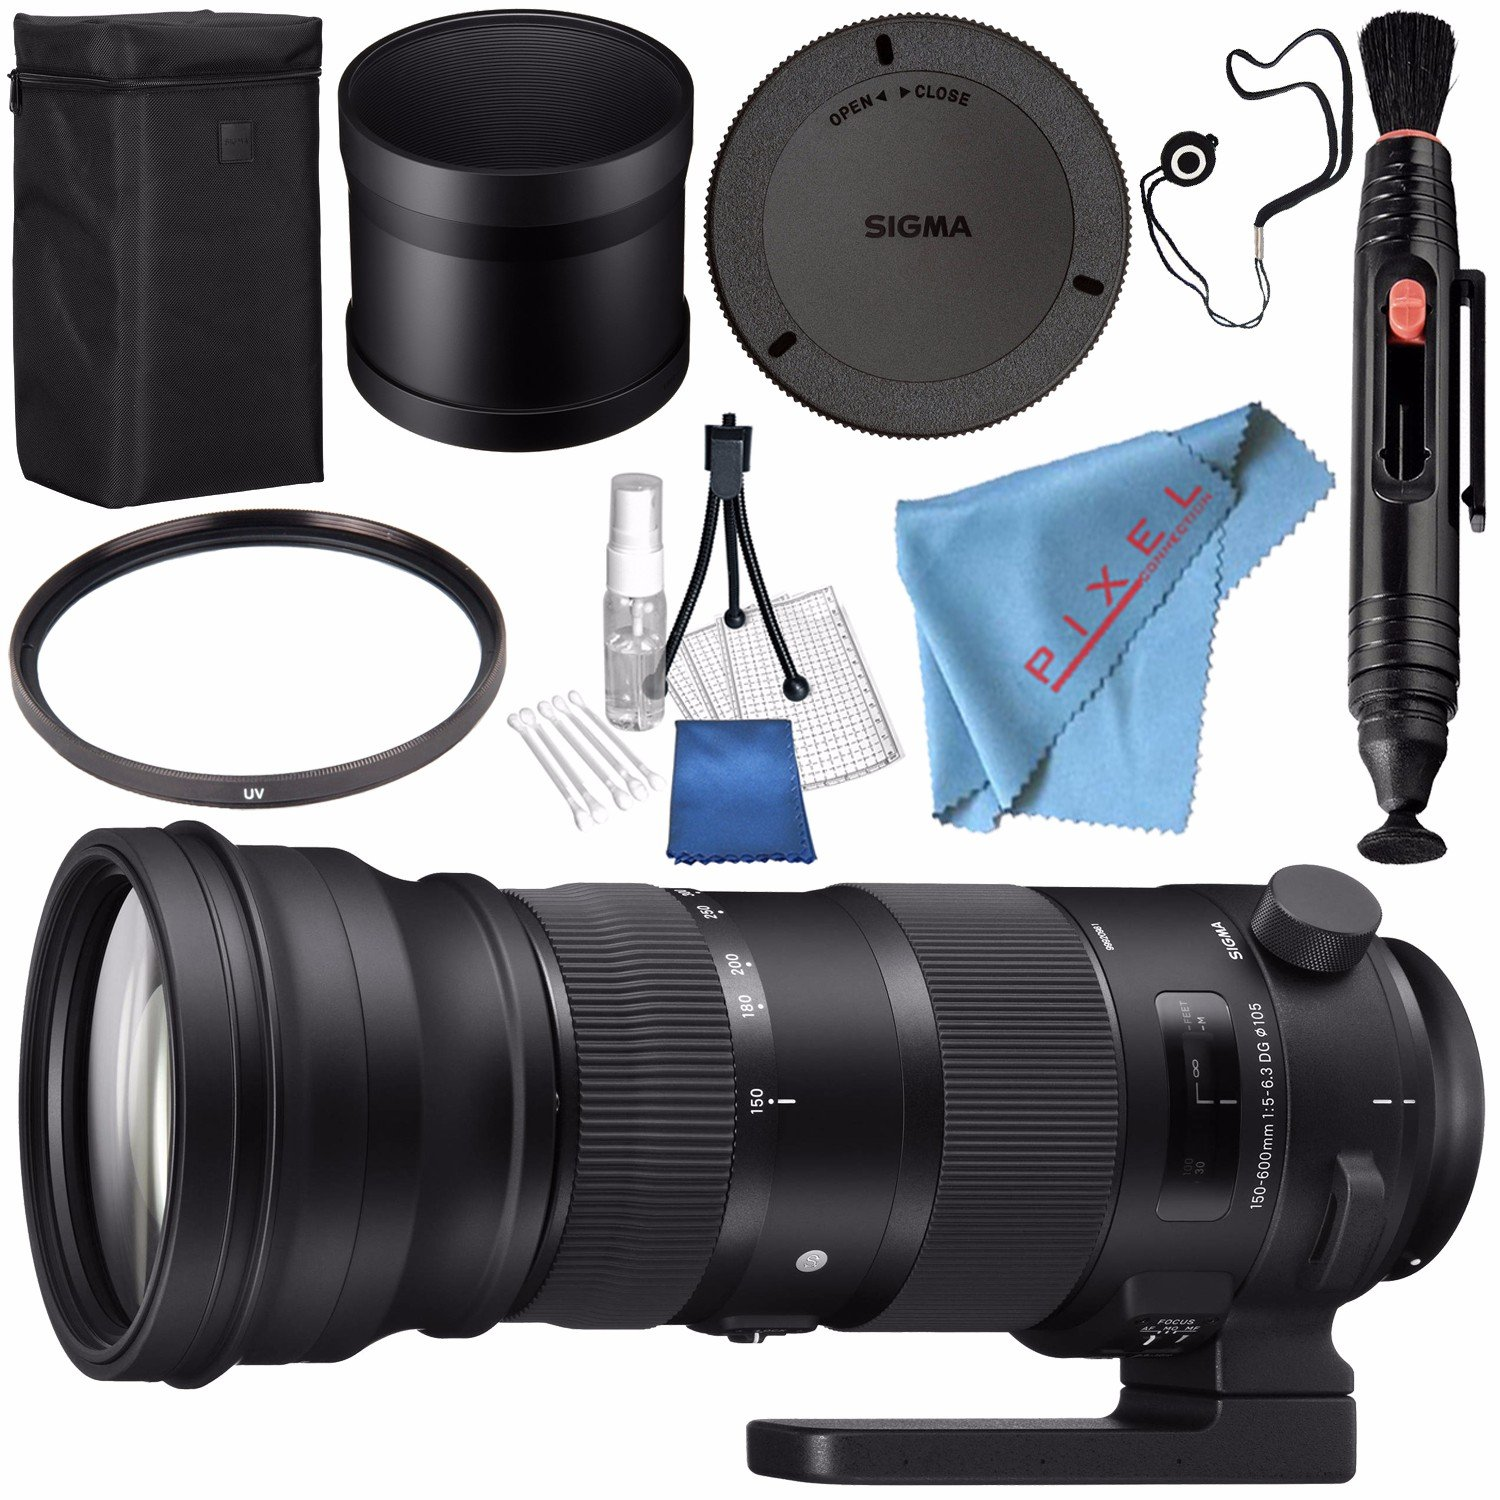 Sigma 150-600mm f/5-6.3 DG OS HSM Sports Lens for Canon EF 740101 + 105mm UV Filter + Lens Pen Cleaner + Fibercloth + Lens Capkeeper + Lens Cleaning Kit + Bundle by Sigma